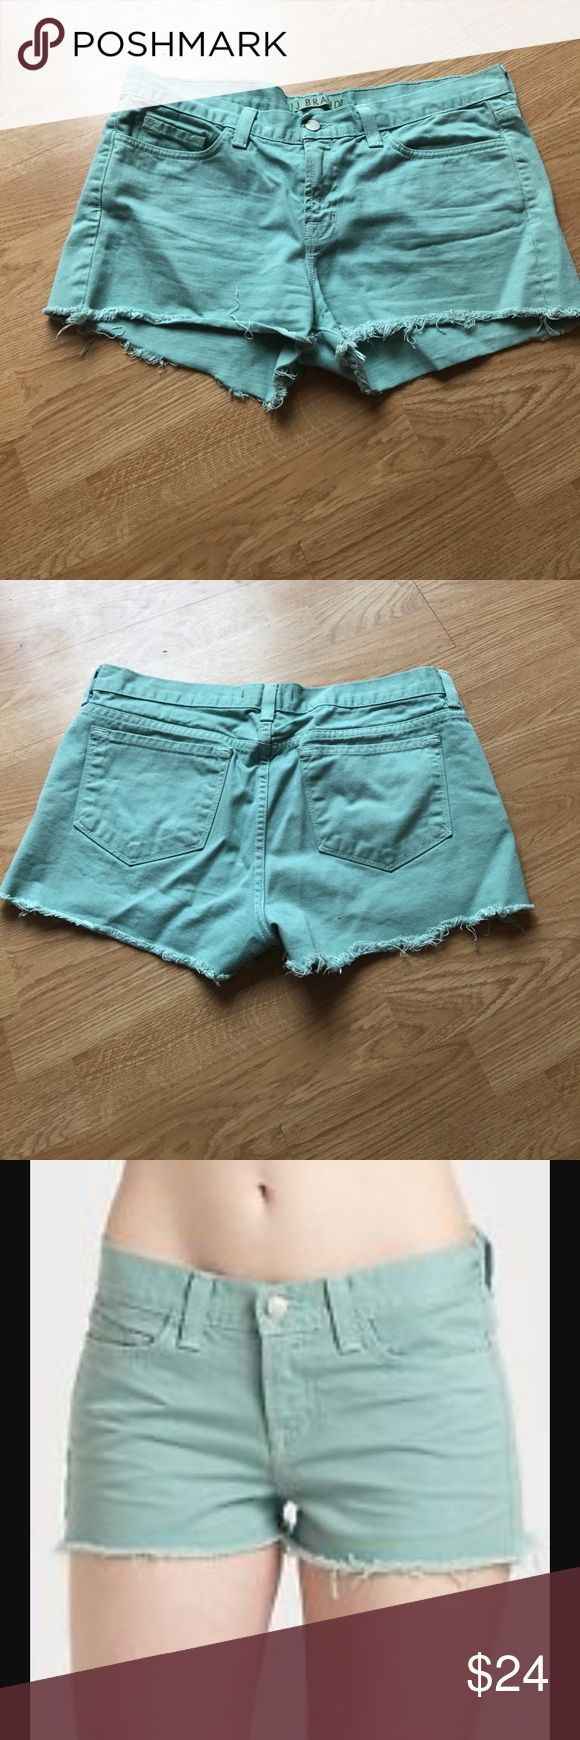 J Brand Juniper Mint Green Jean Shorts Mint Green Ripped jean shorts. Zipper and Button closure. J Brand Shorts Jean Shorts